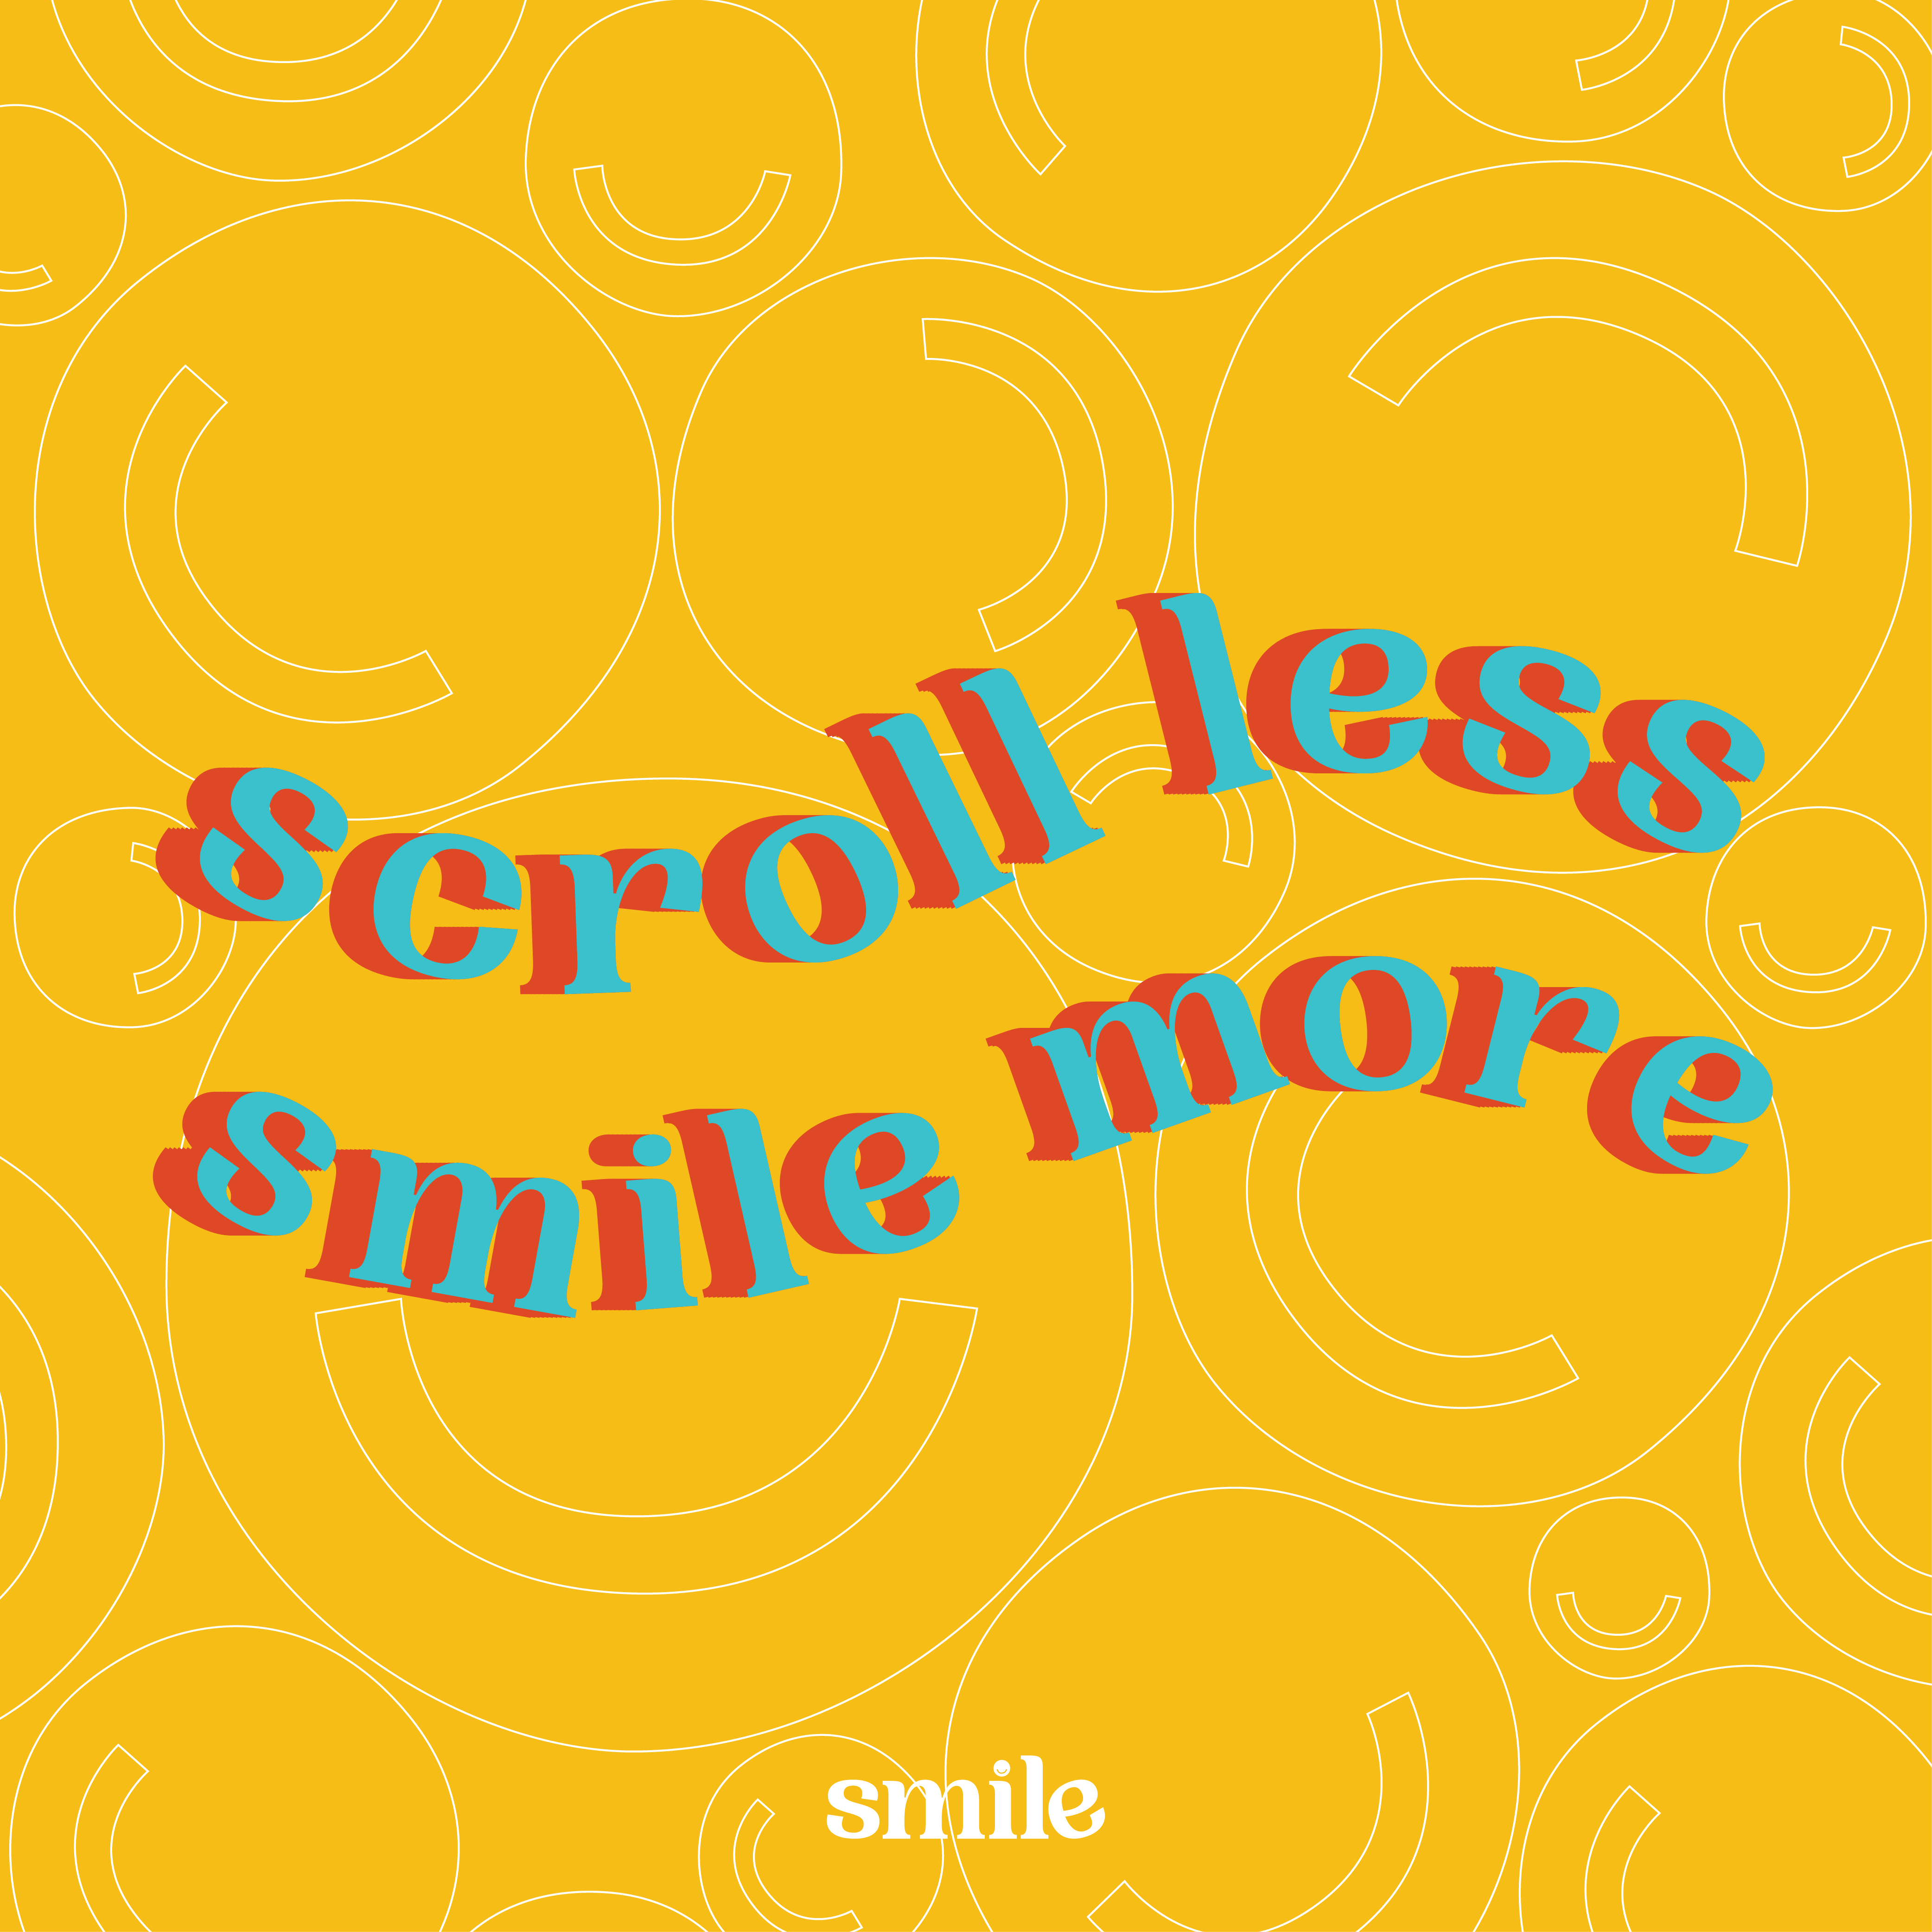 QUOTE POSTS FOR SMILE